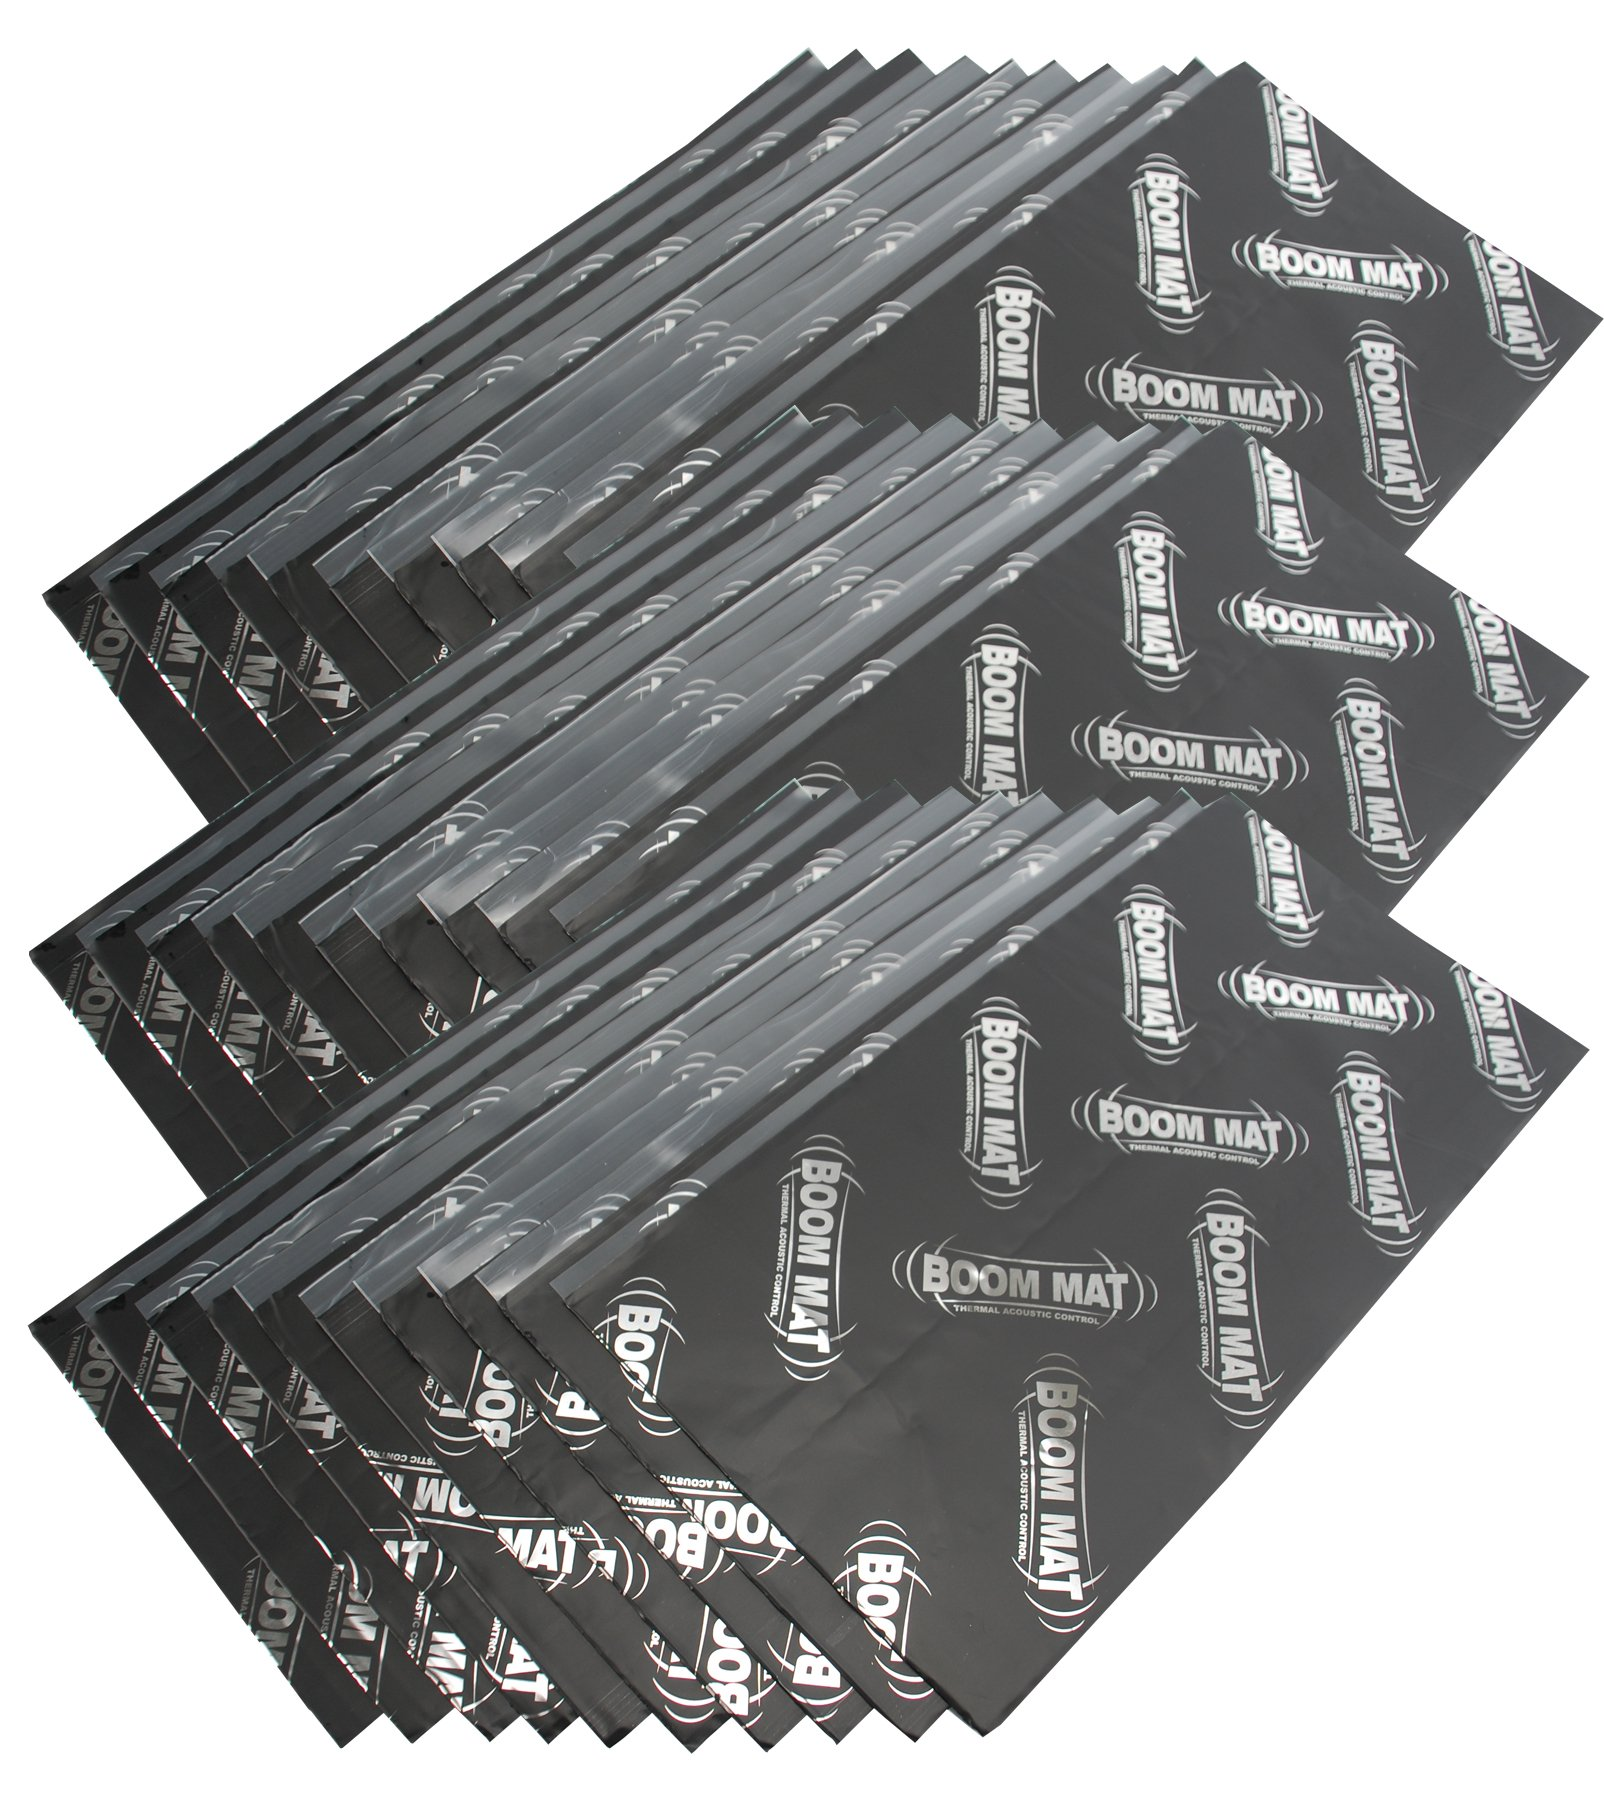 DEI 050214 Boom Mat Sound Damping Material with Adhesive Backing, 12.5'' x 24'' x 2mm (Pack of 30)